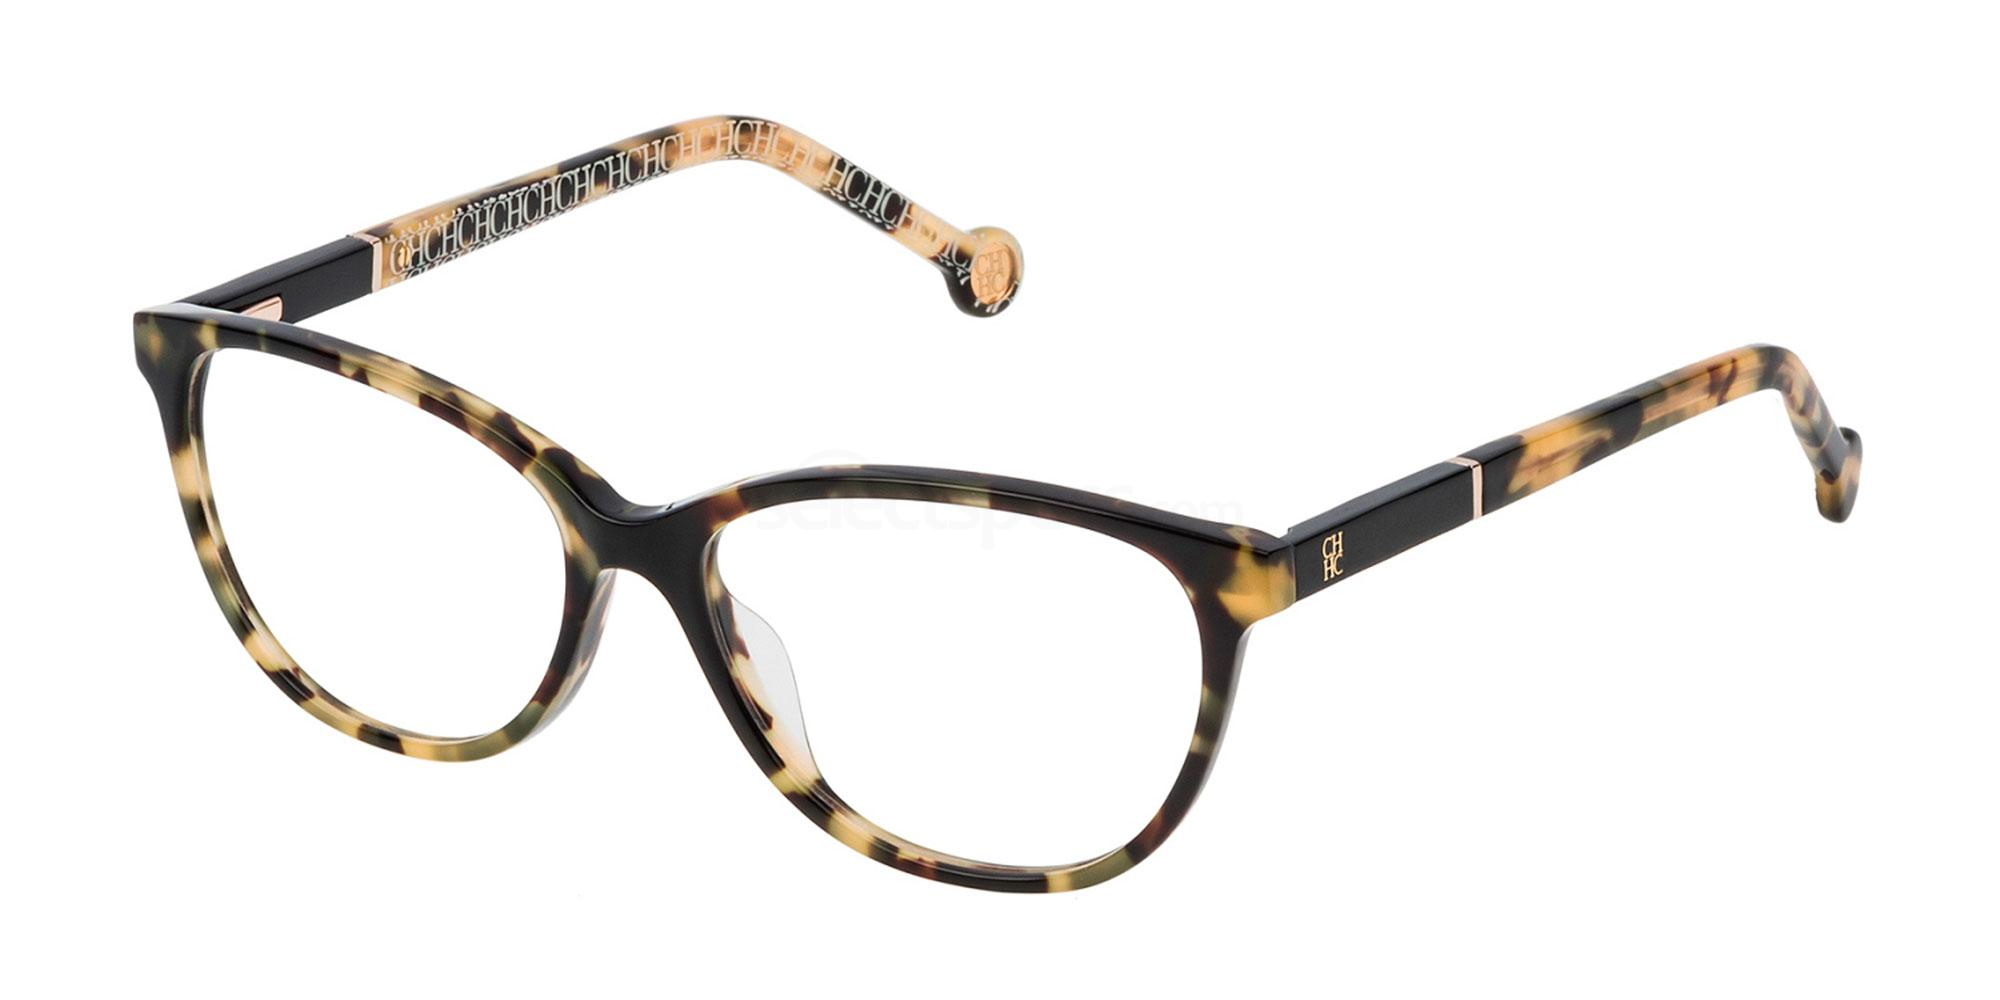 0AGG VHE713 Glasses, CH Carolina Herrera